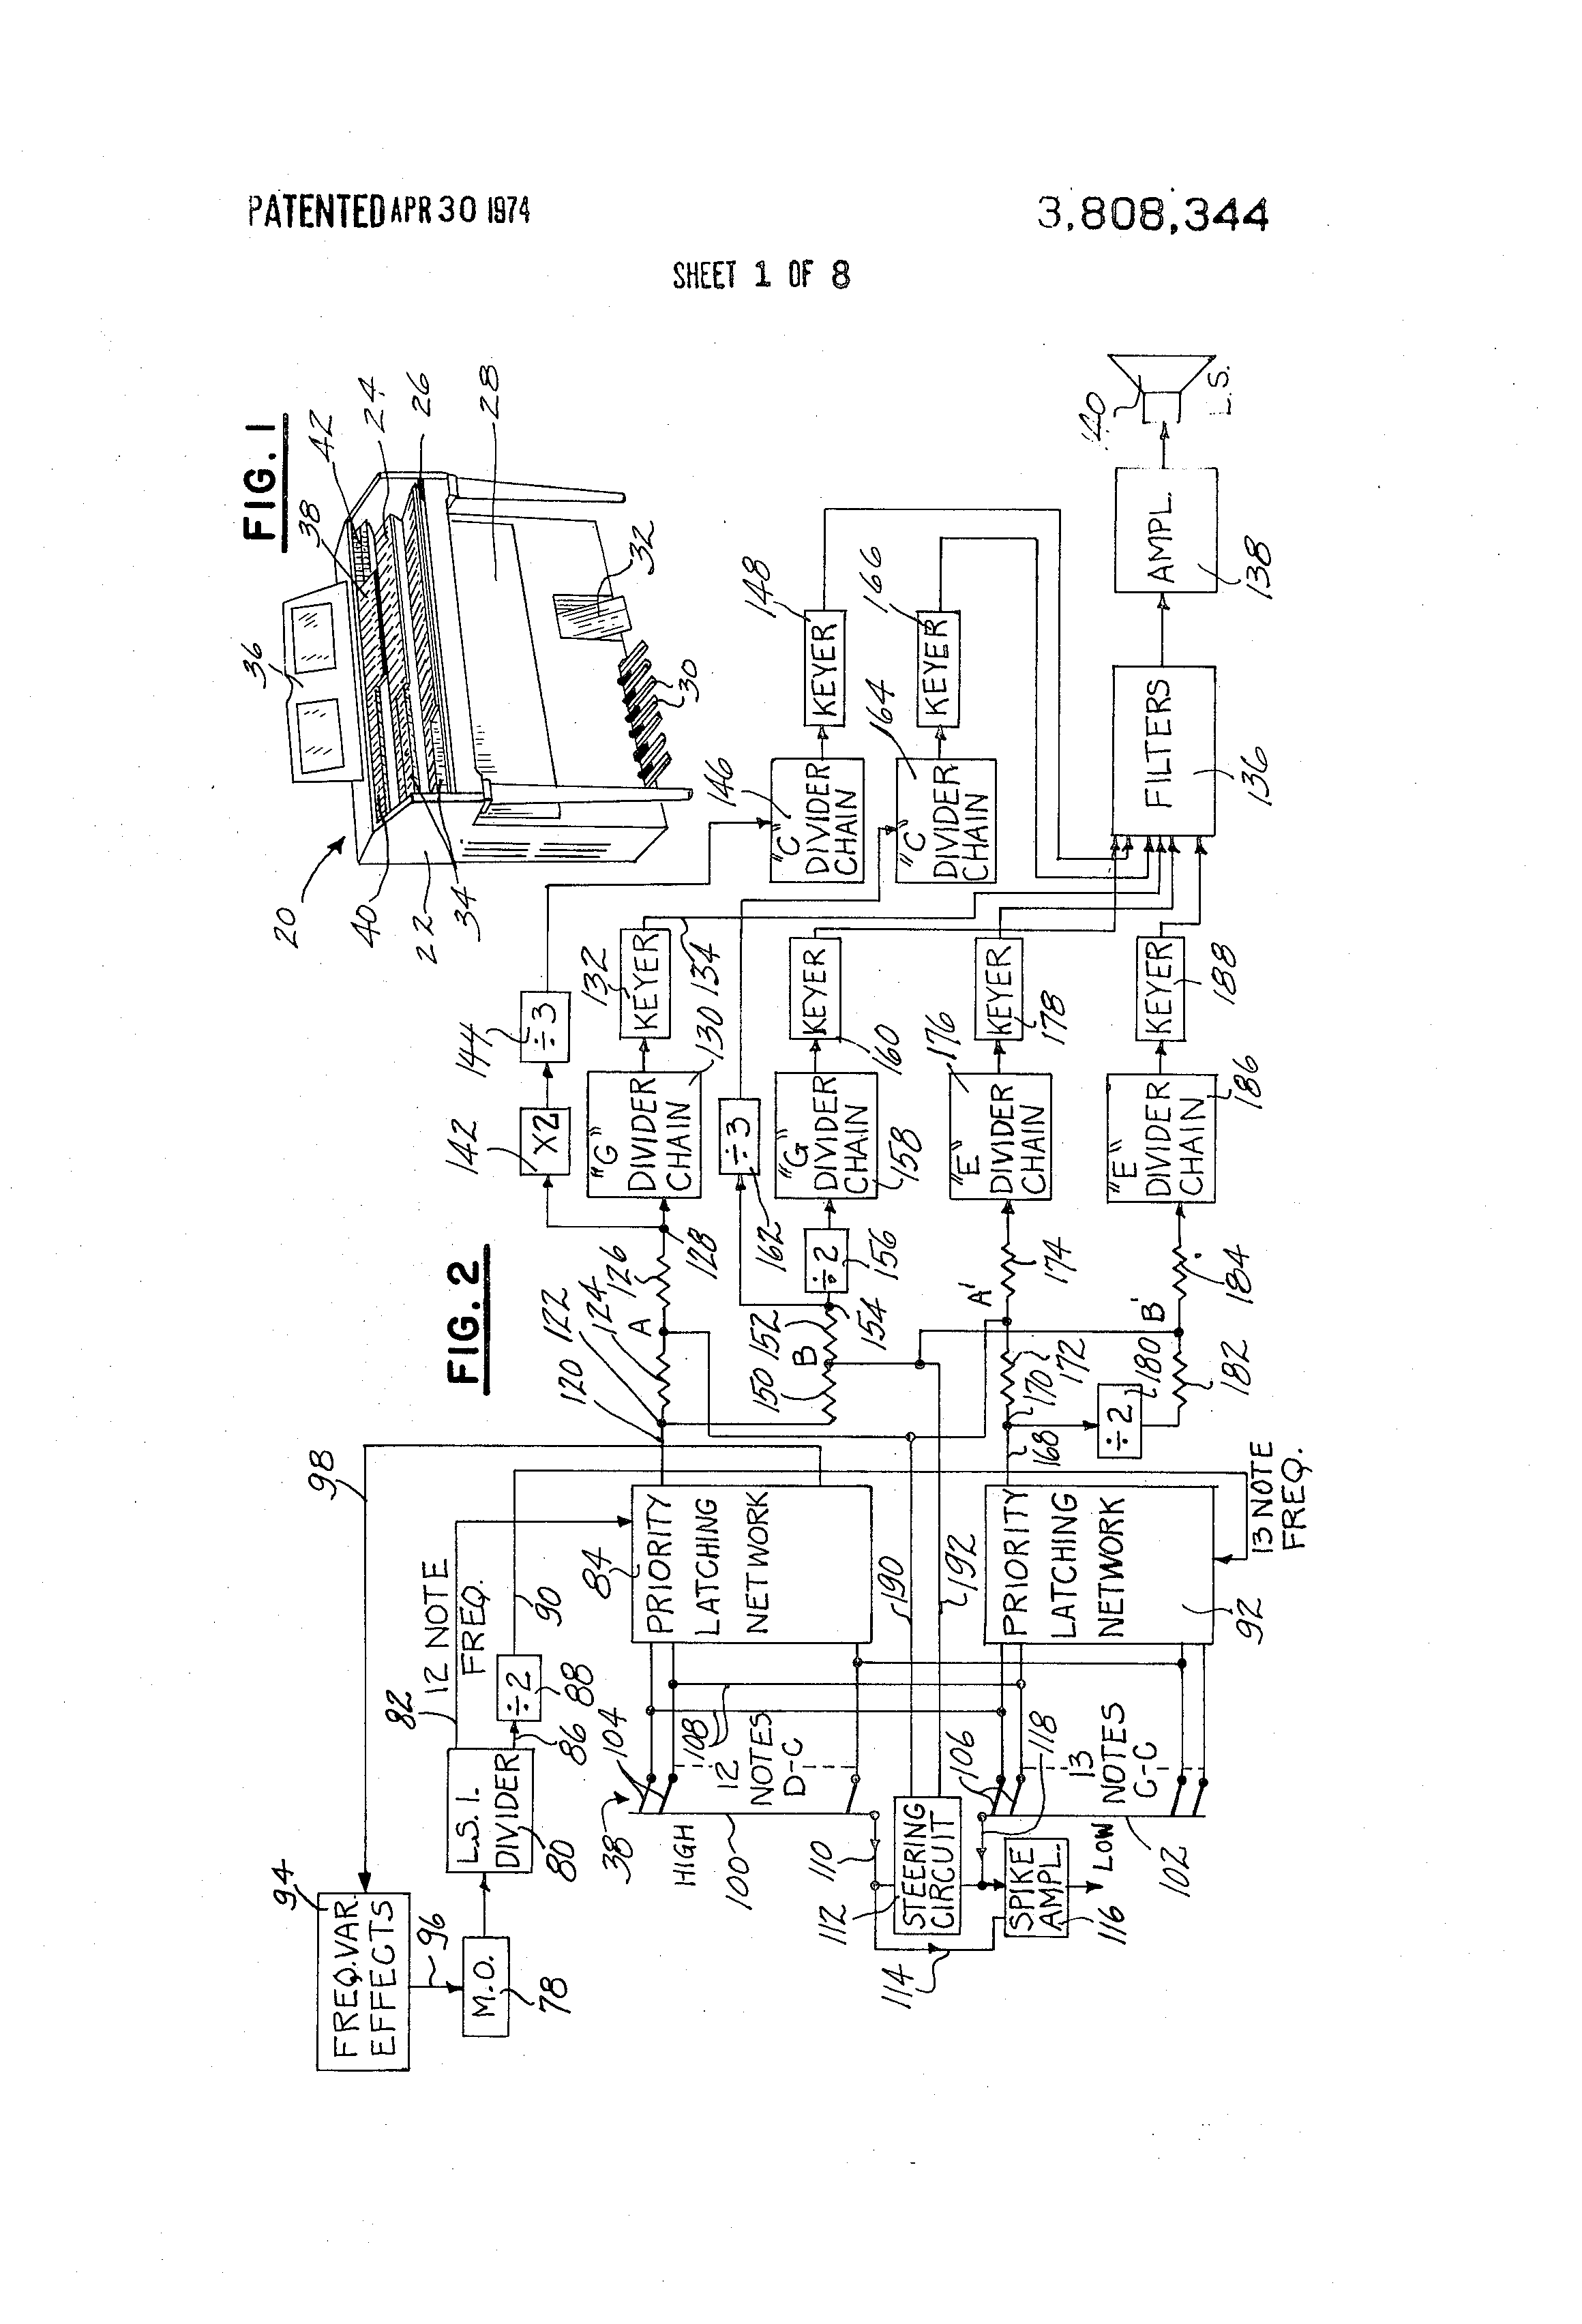 Excellent 1992 Llv Wiring Diagram Auto Electrical Wiring Diagram Wiring Digital Resources Zidurslowmaporg